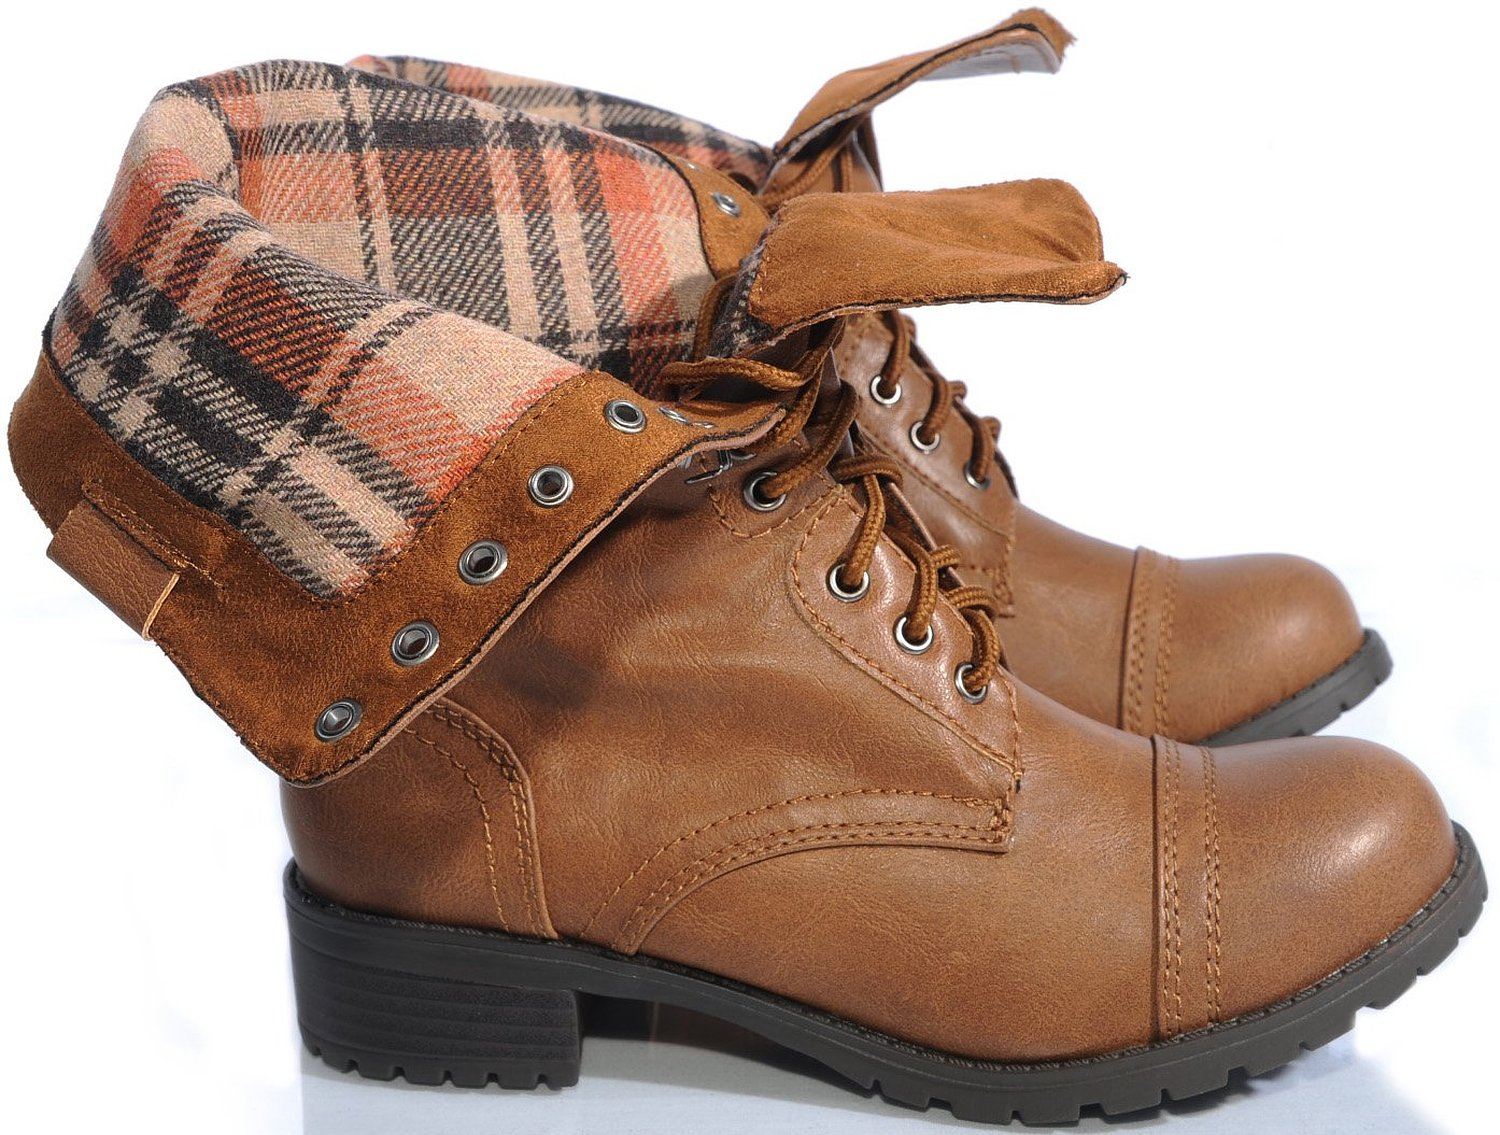 Amazon.com: Marco Republic Expedition Womens Military Combat Boots: Clothing